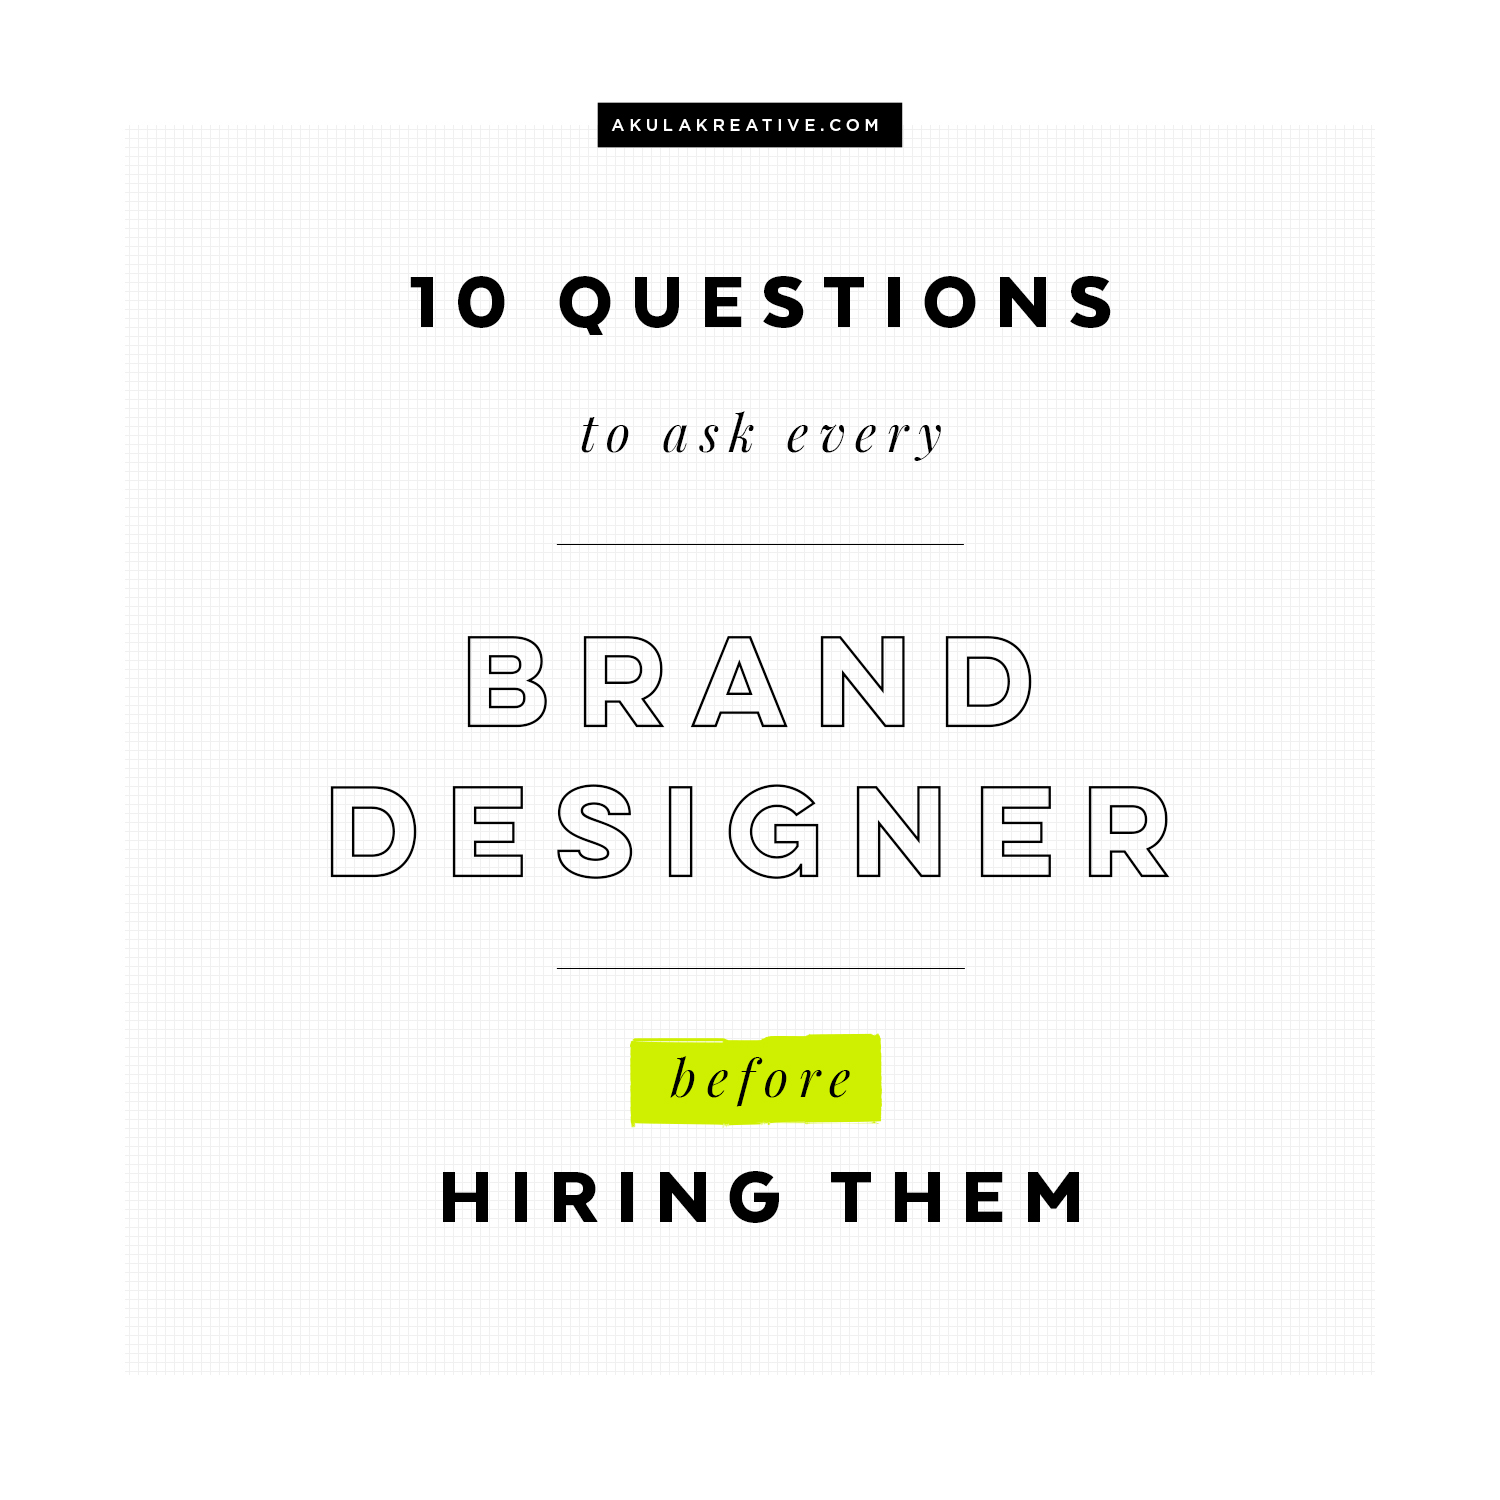 10 Questions You Should Ask Every BRAND DESIGNER Before Hiring Them | akulakreative.com